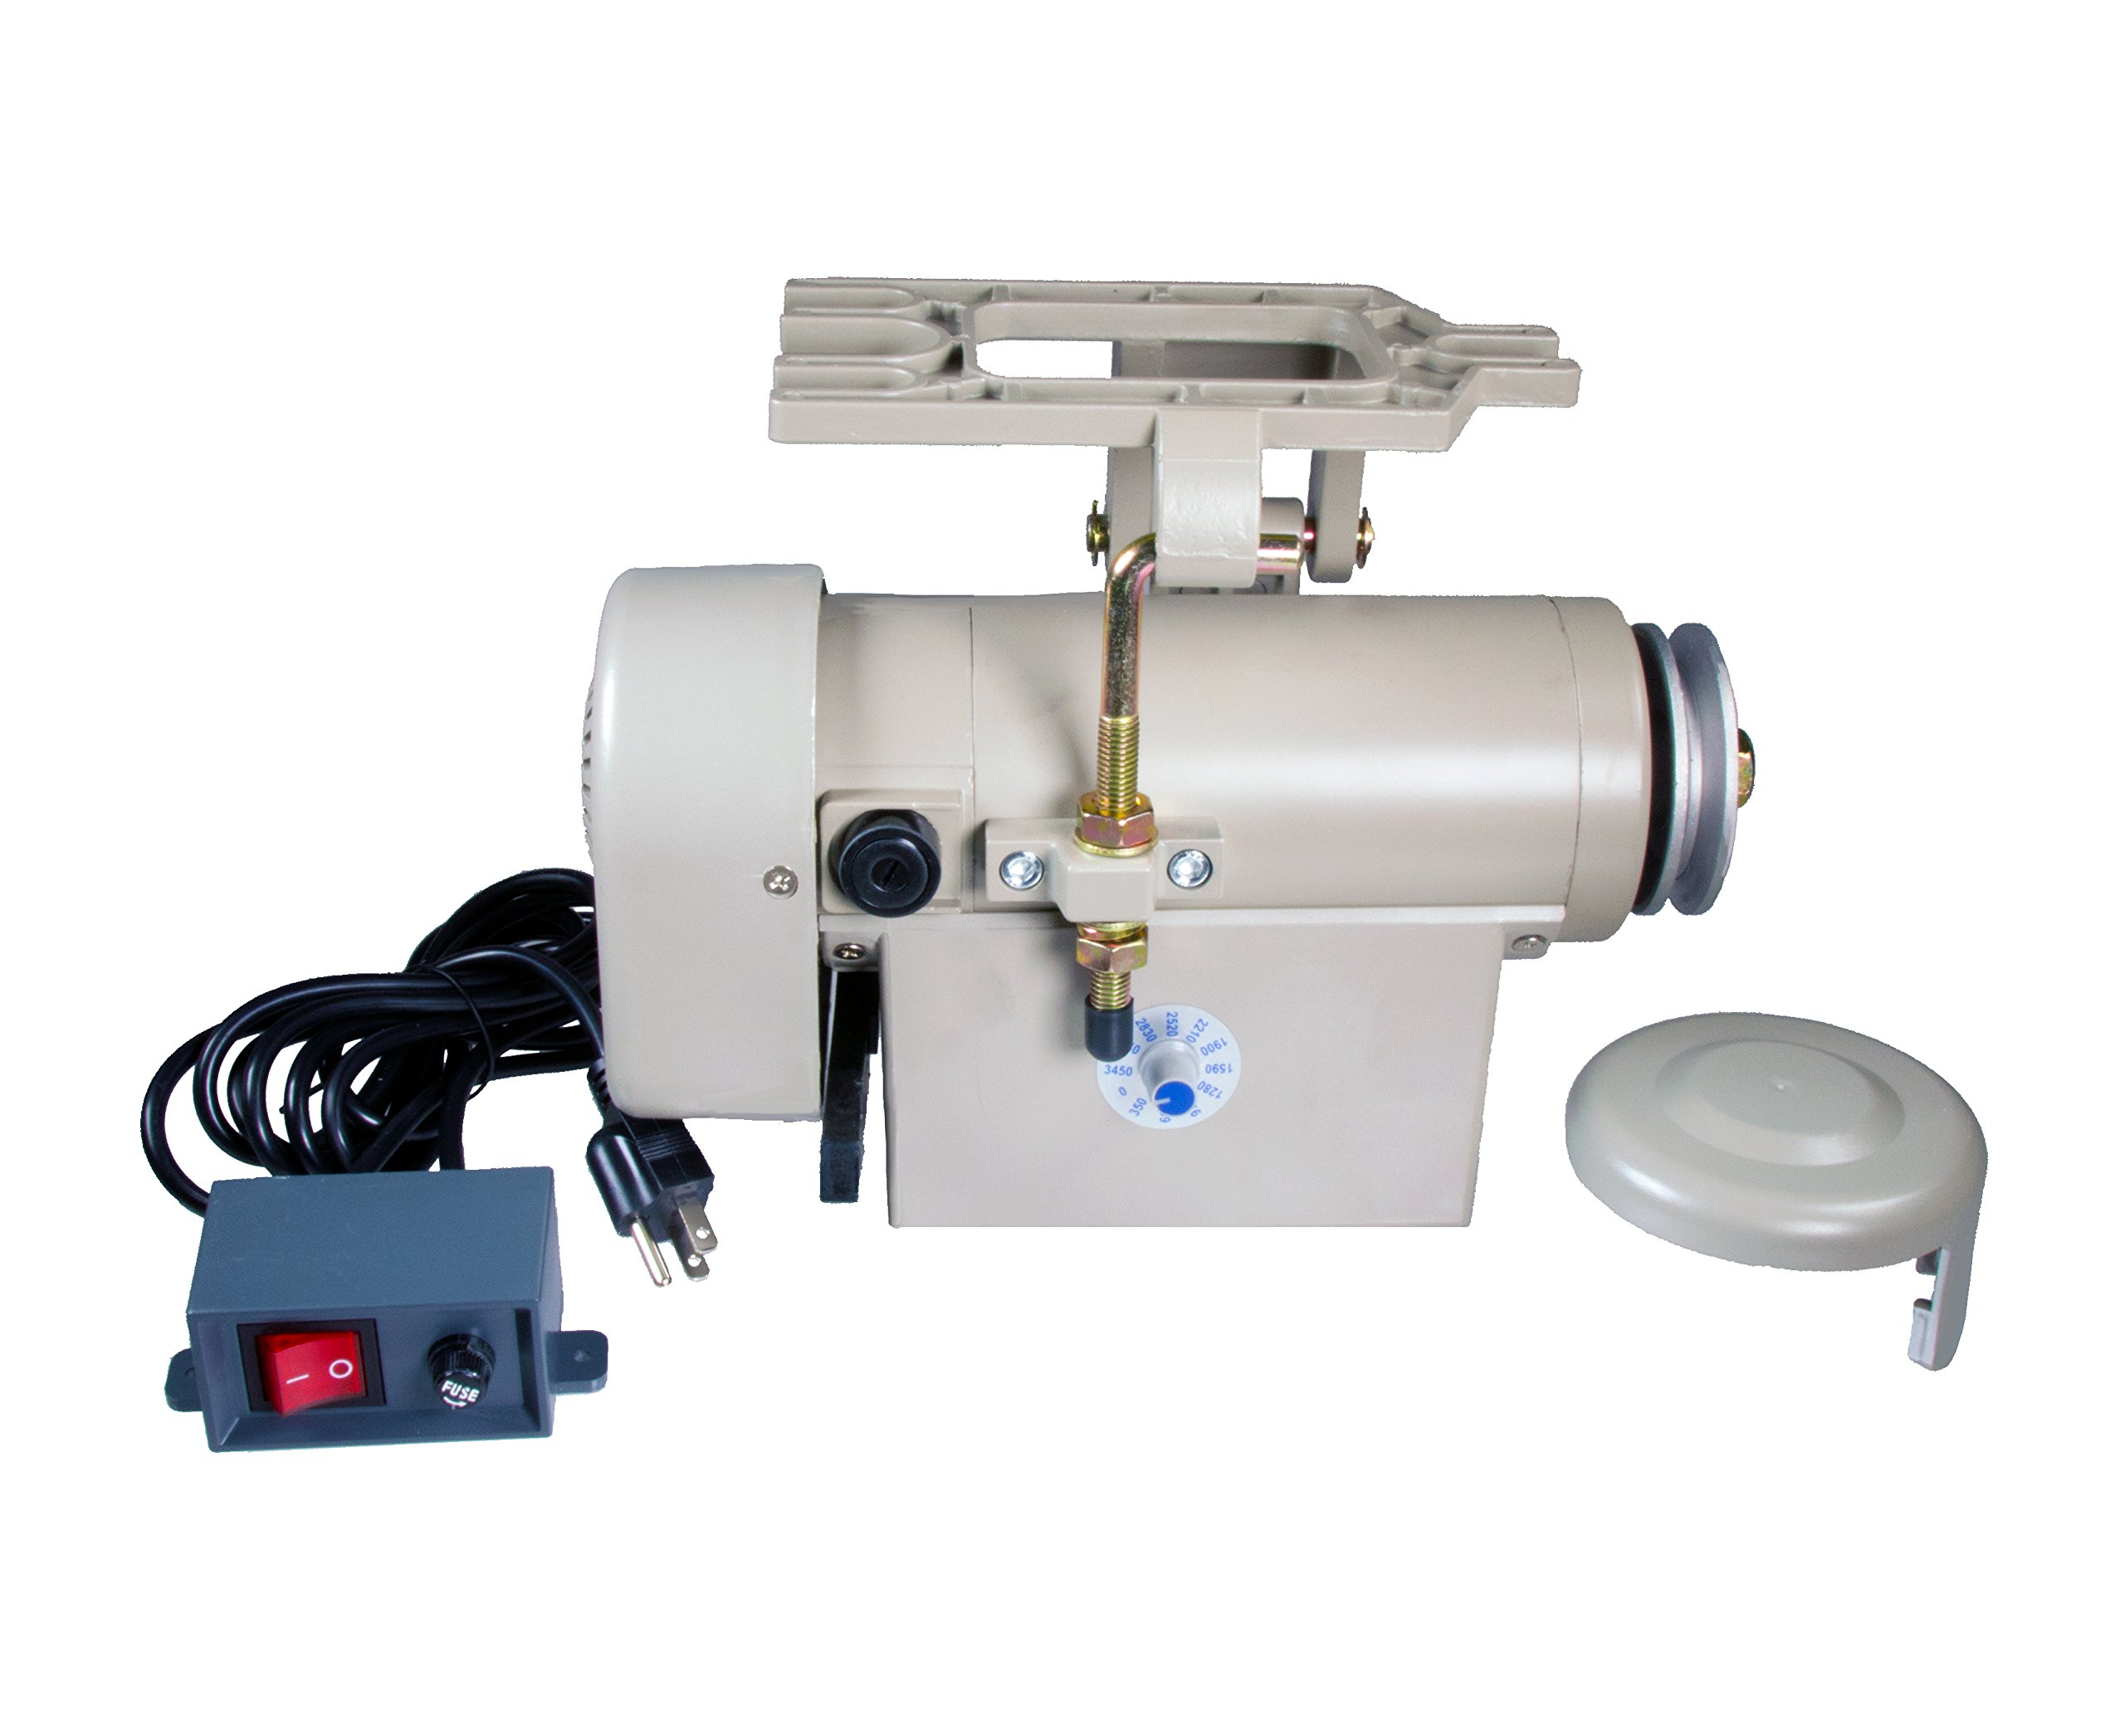 Enduro Sewing Machine Motor - 550 Watt Electric Servo Motor product image